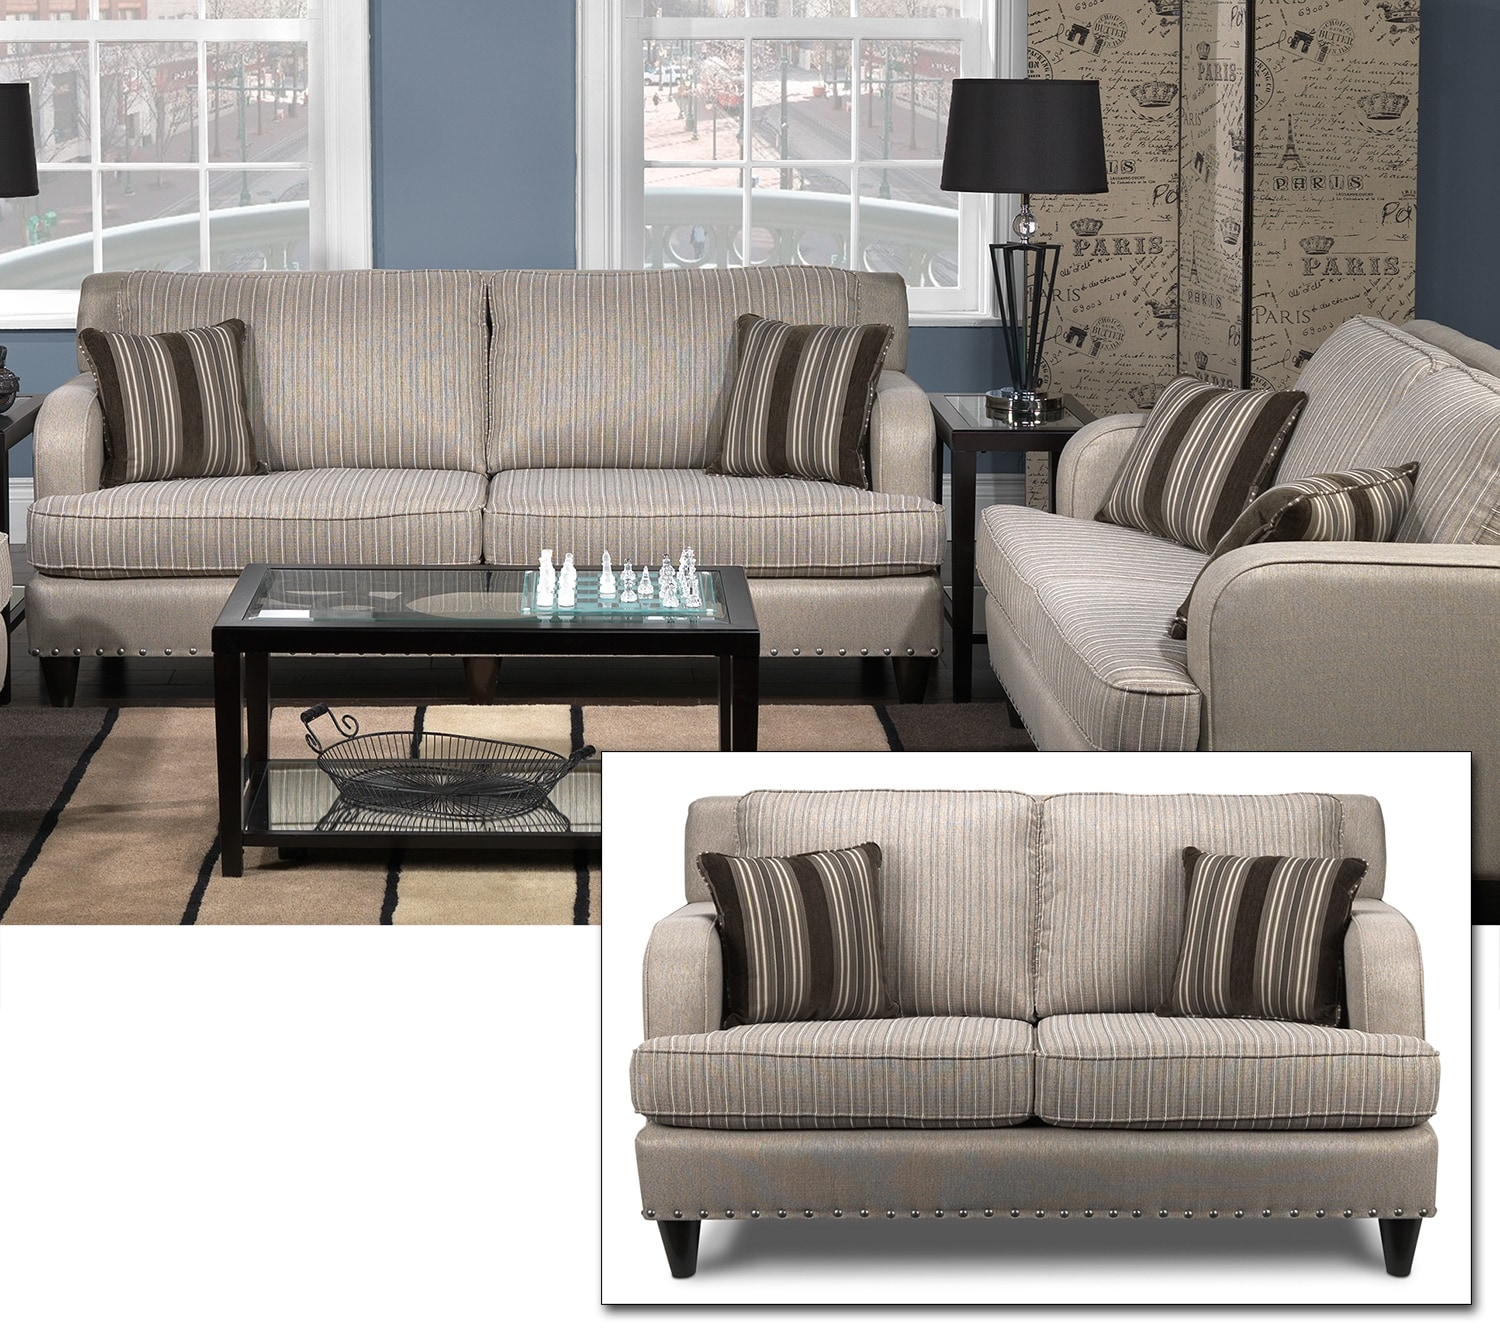 Marielle Sofa and Loveseat Set - Light Brown